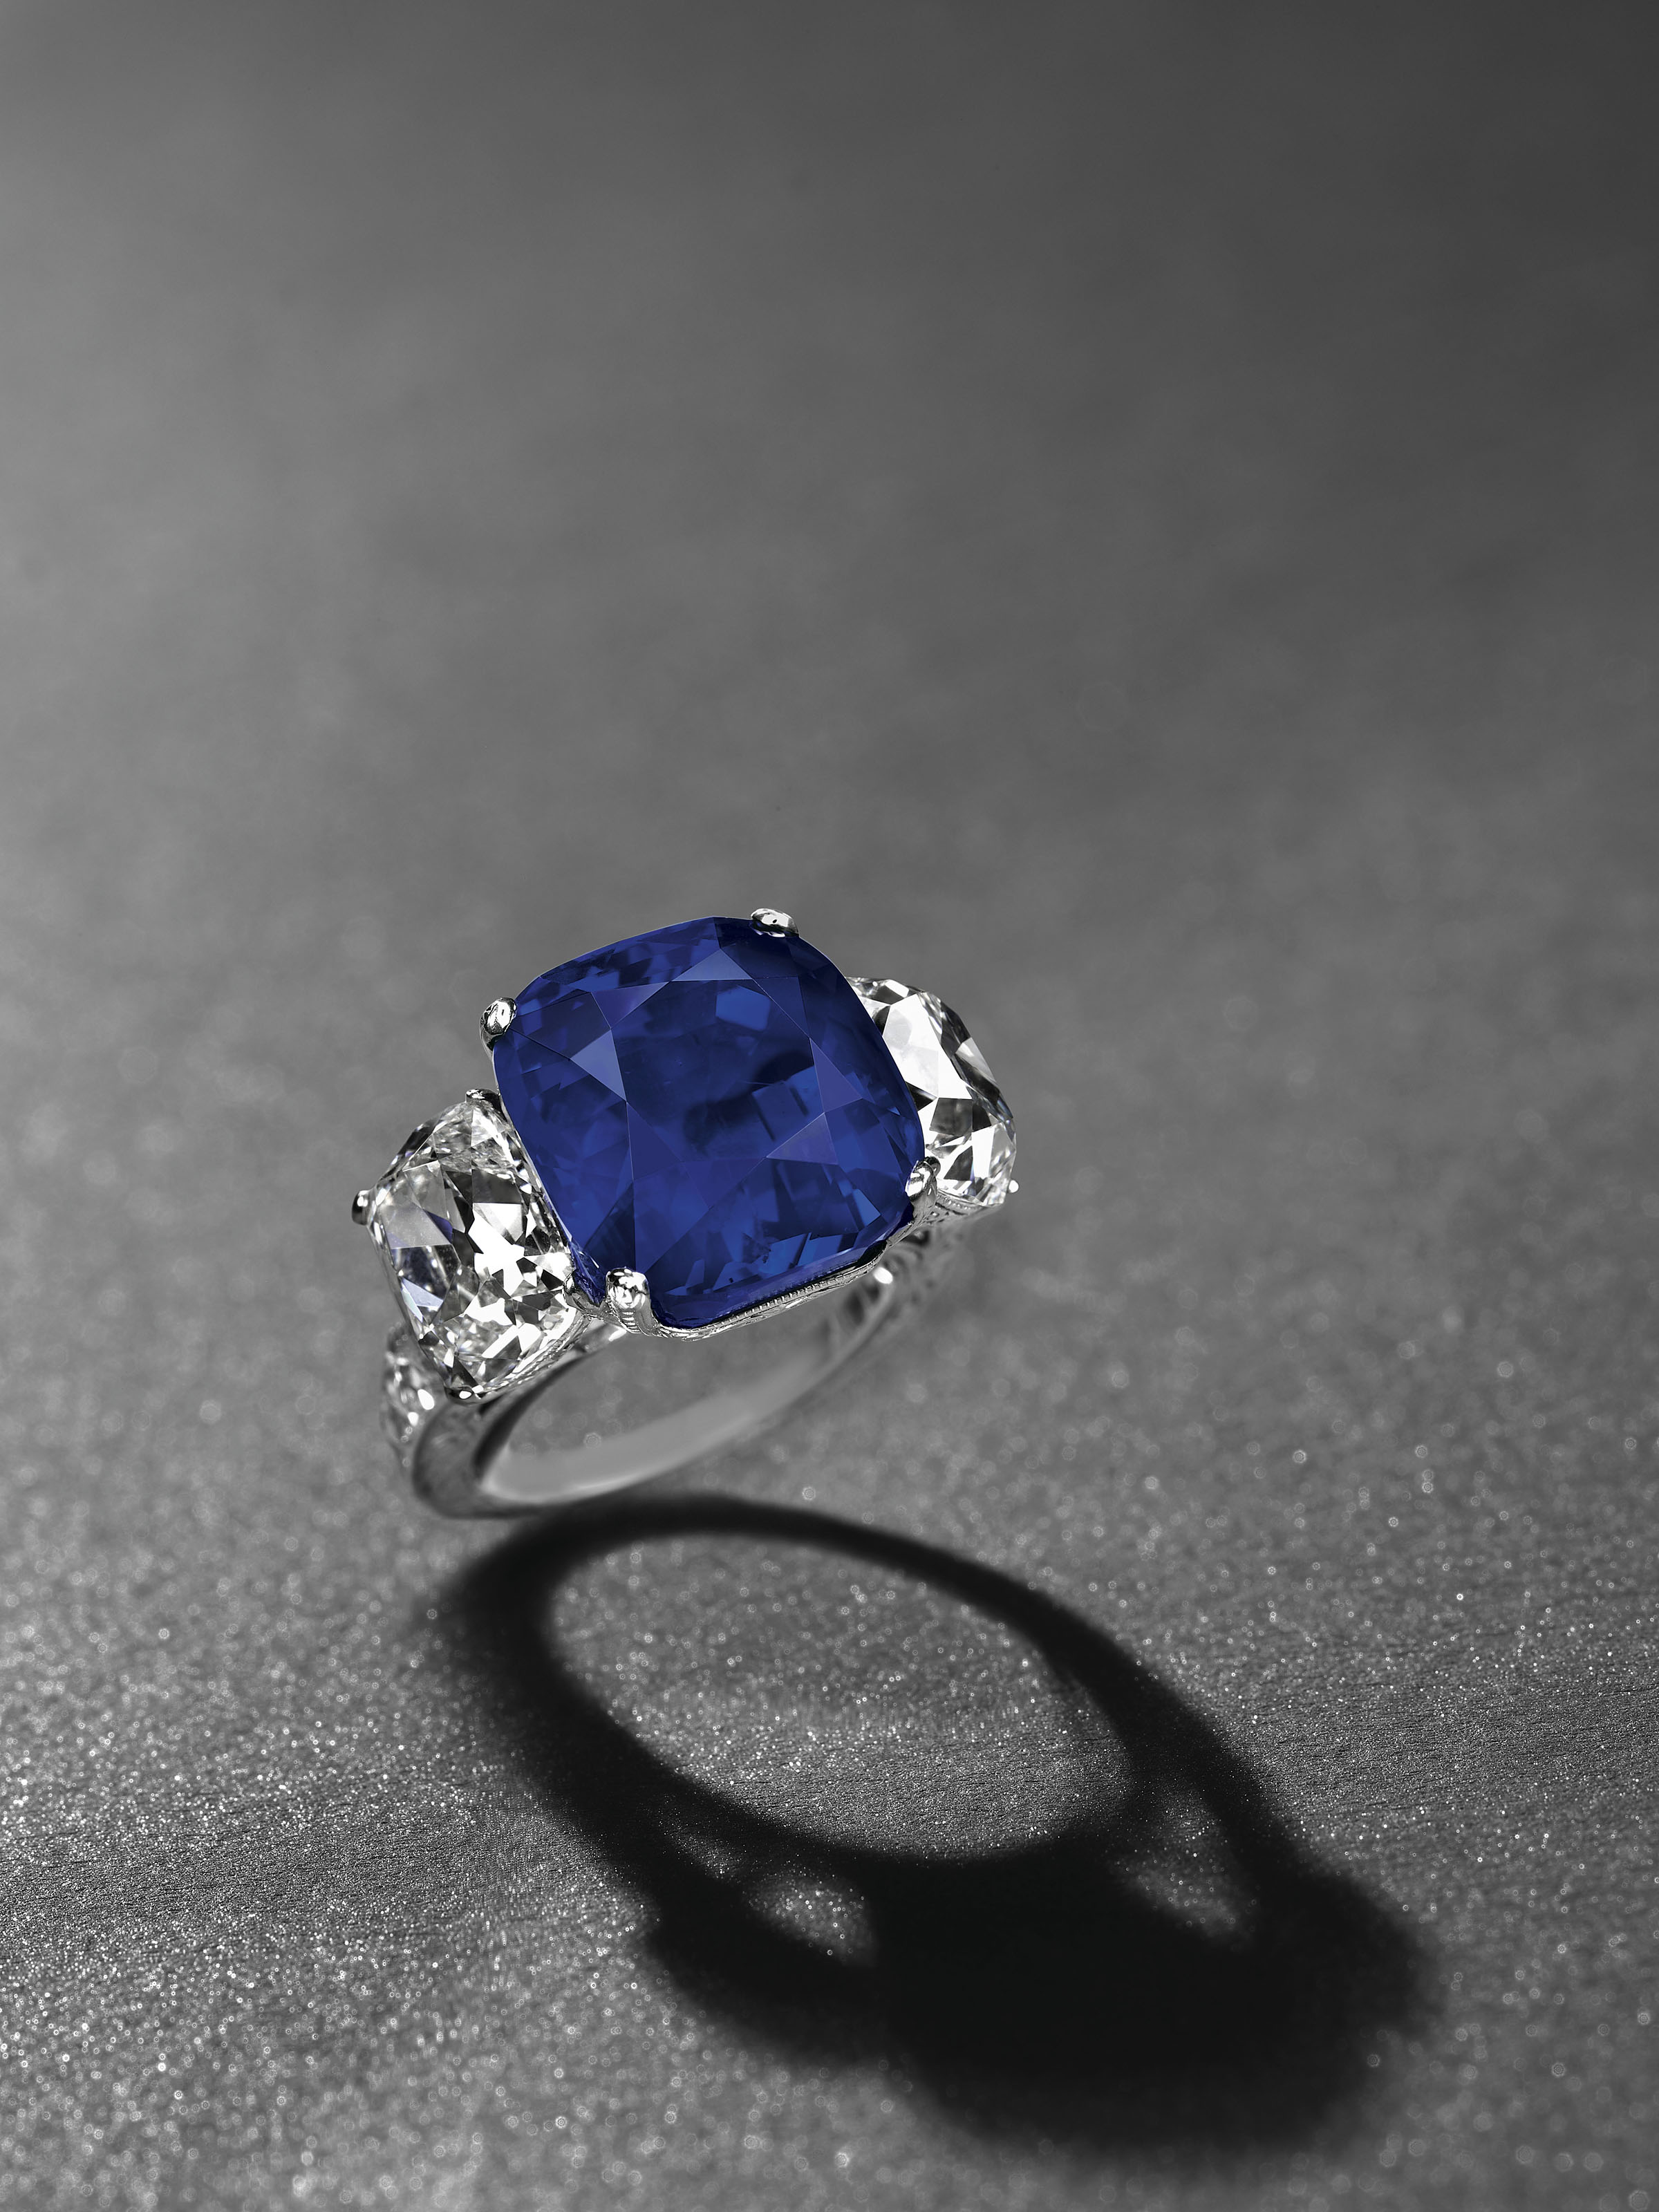 the store gemstone perfect sapphire rings your experts diamond with ask engagement choosing ponk pink for ring h